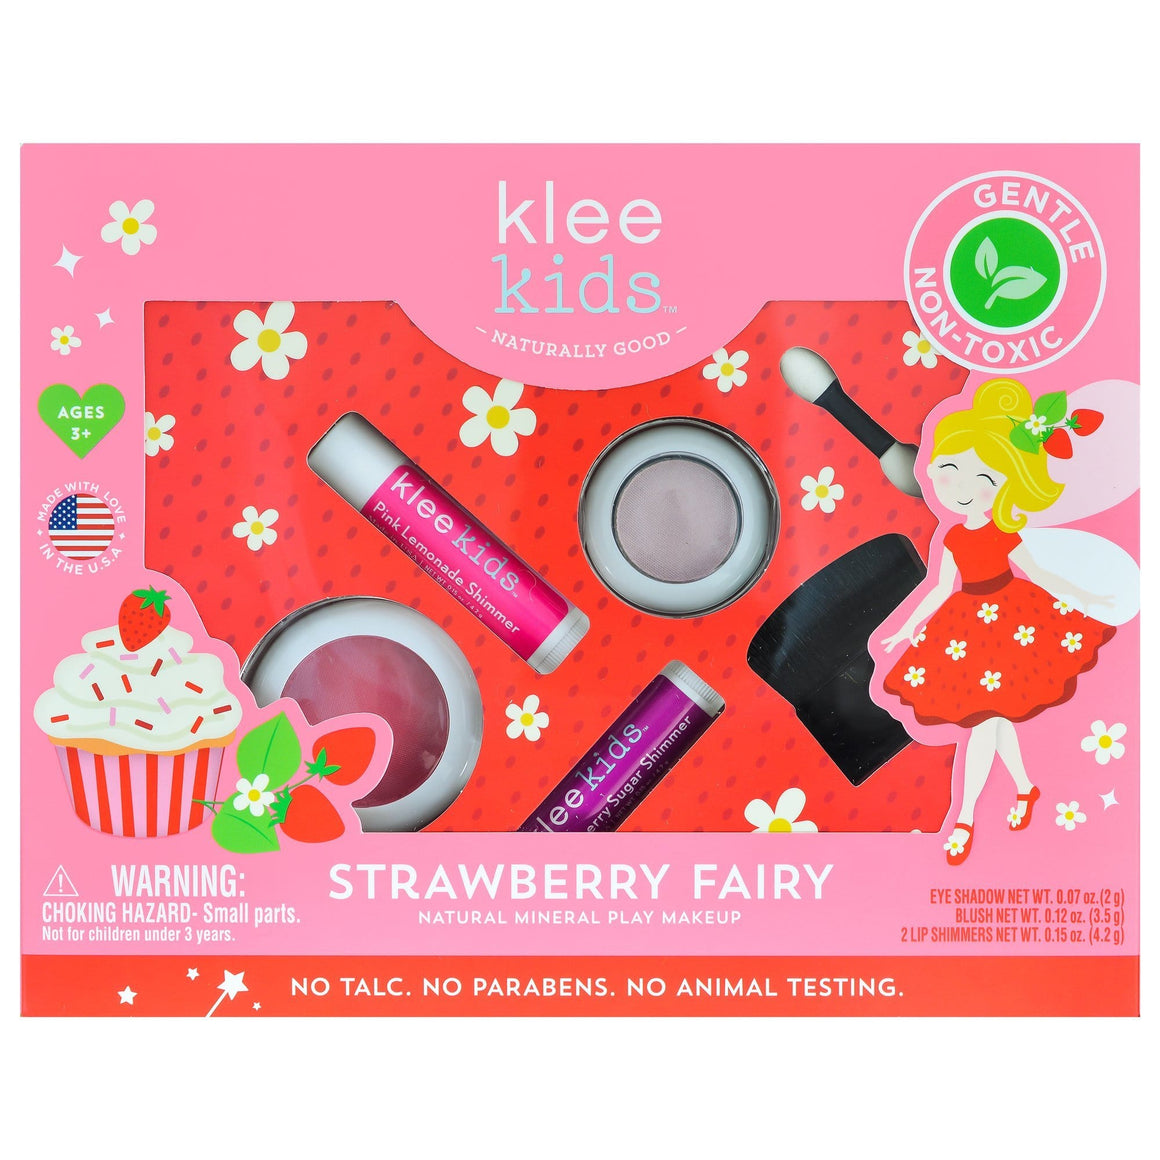 KLEE Naturals USA- STRAWBERRY FAIRY - KLEE KIDS NATURAL PRESSED POWDER MINERAL PLAY MAKEUP SET